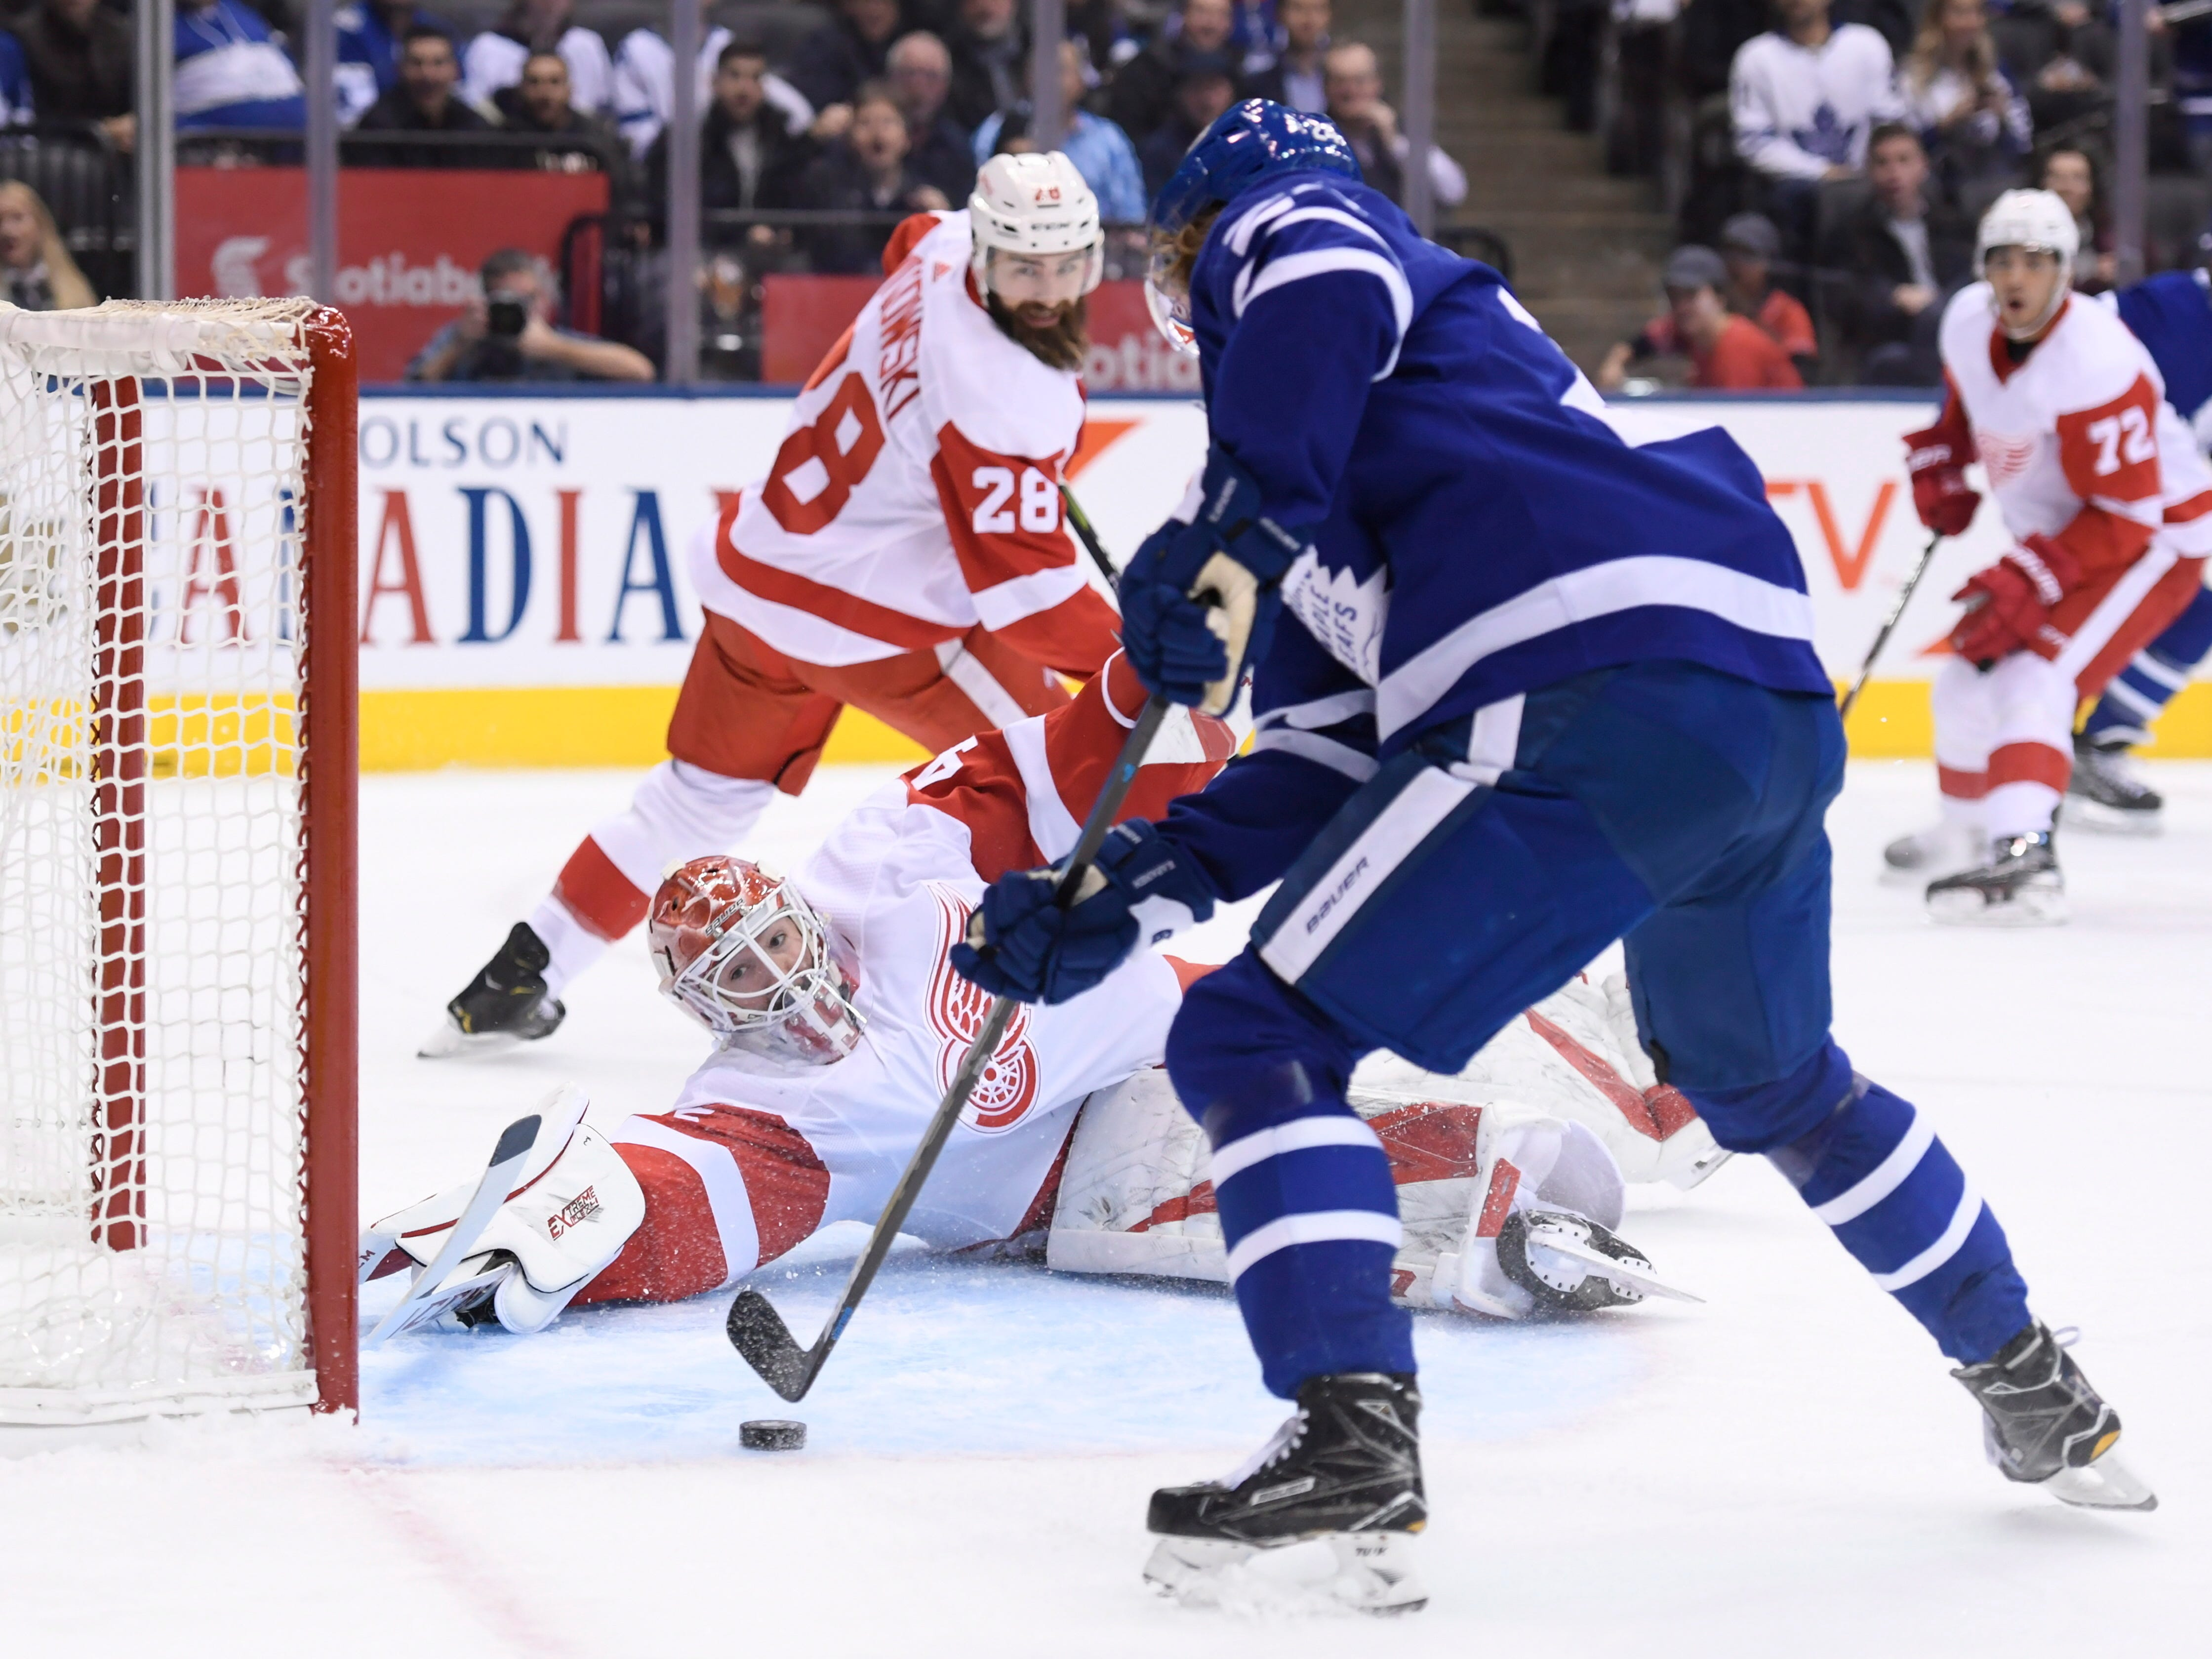 Maple Leafs right wing Kasperi Kapanen scores past Red Wings goaltender Jonathan Bernier during the first period.